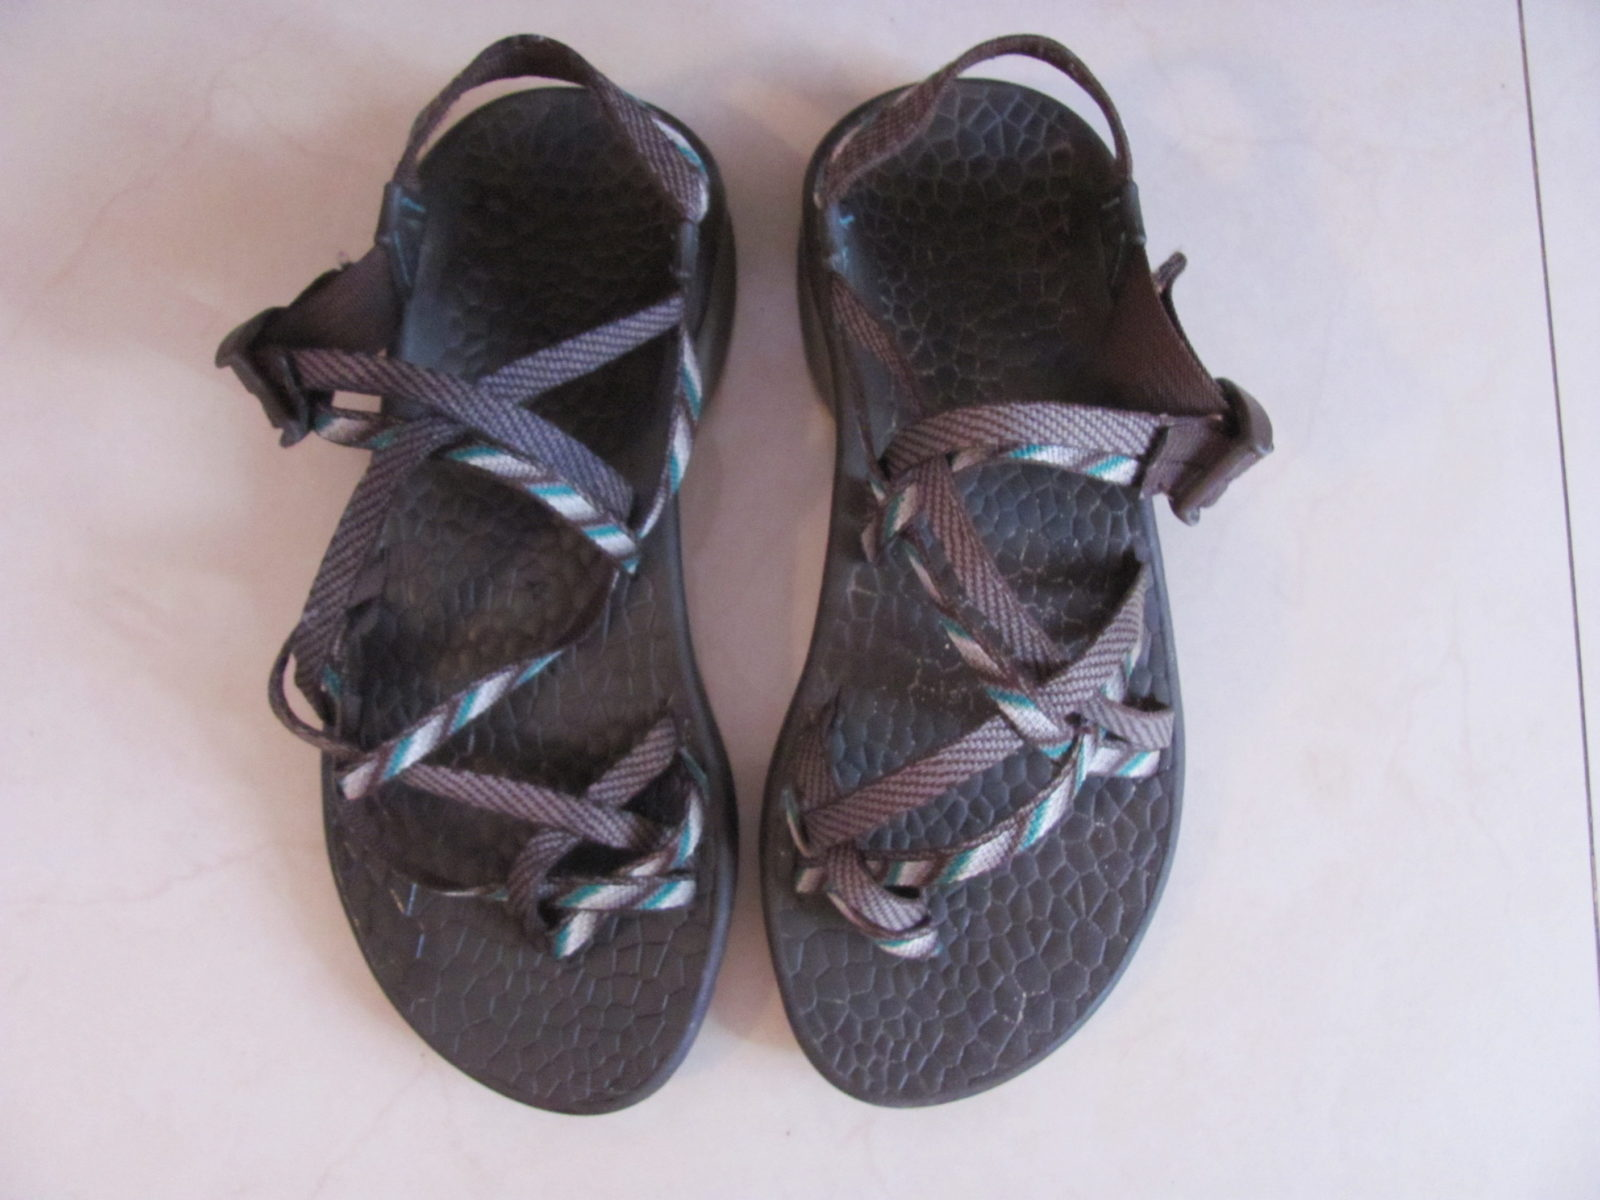 These guys are the absolute best travel sandals. However, sometimes it's tricky to figure out what to order, so I made a Chacos buying guide!